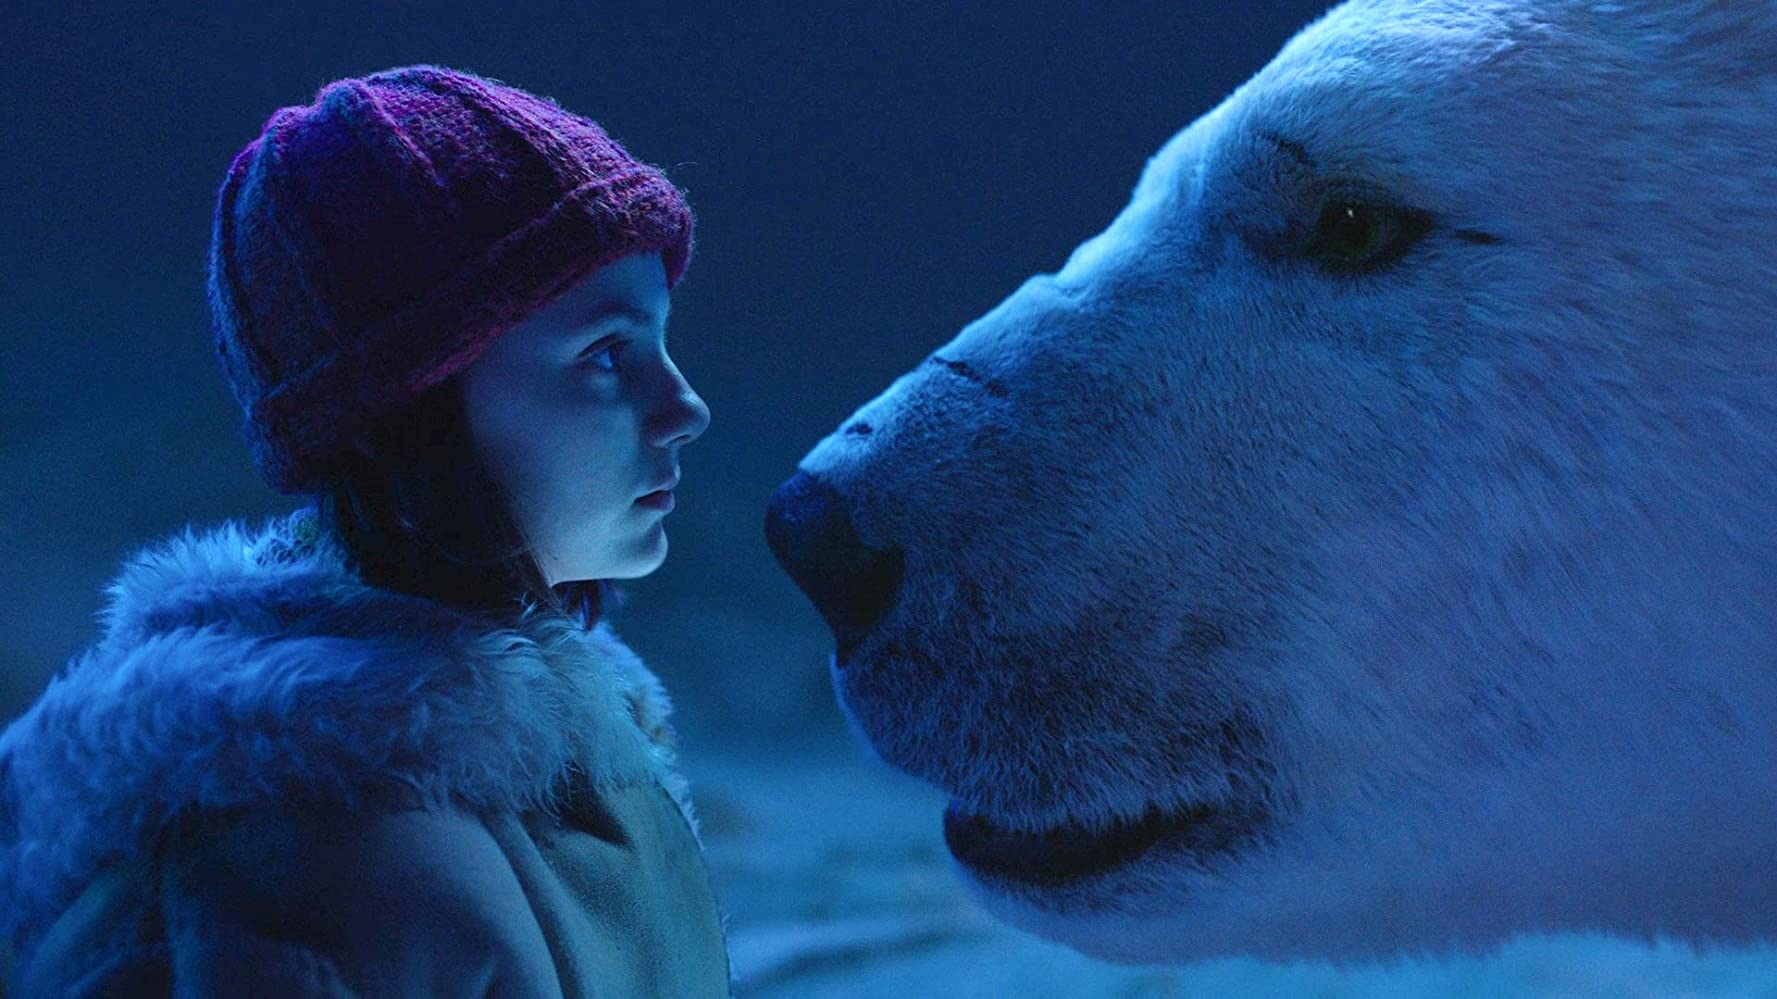 Dafne Keen and Joe Tandberg in His Dark Materials (2019)